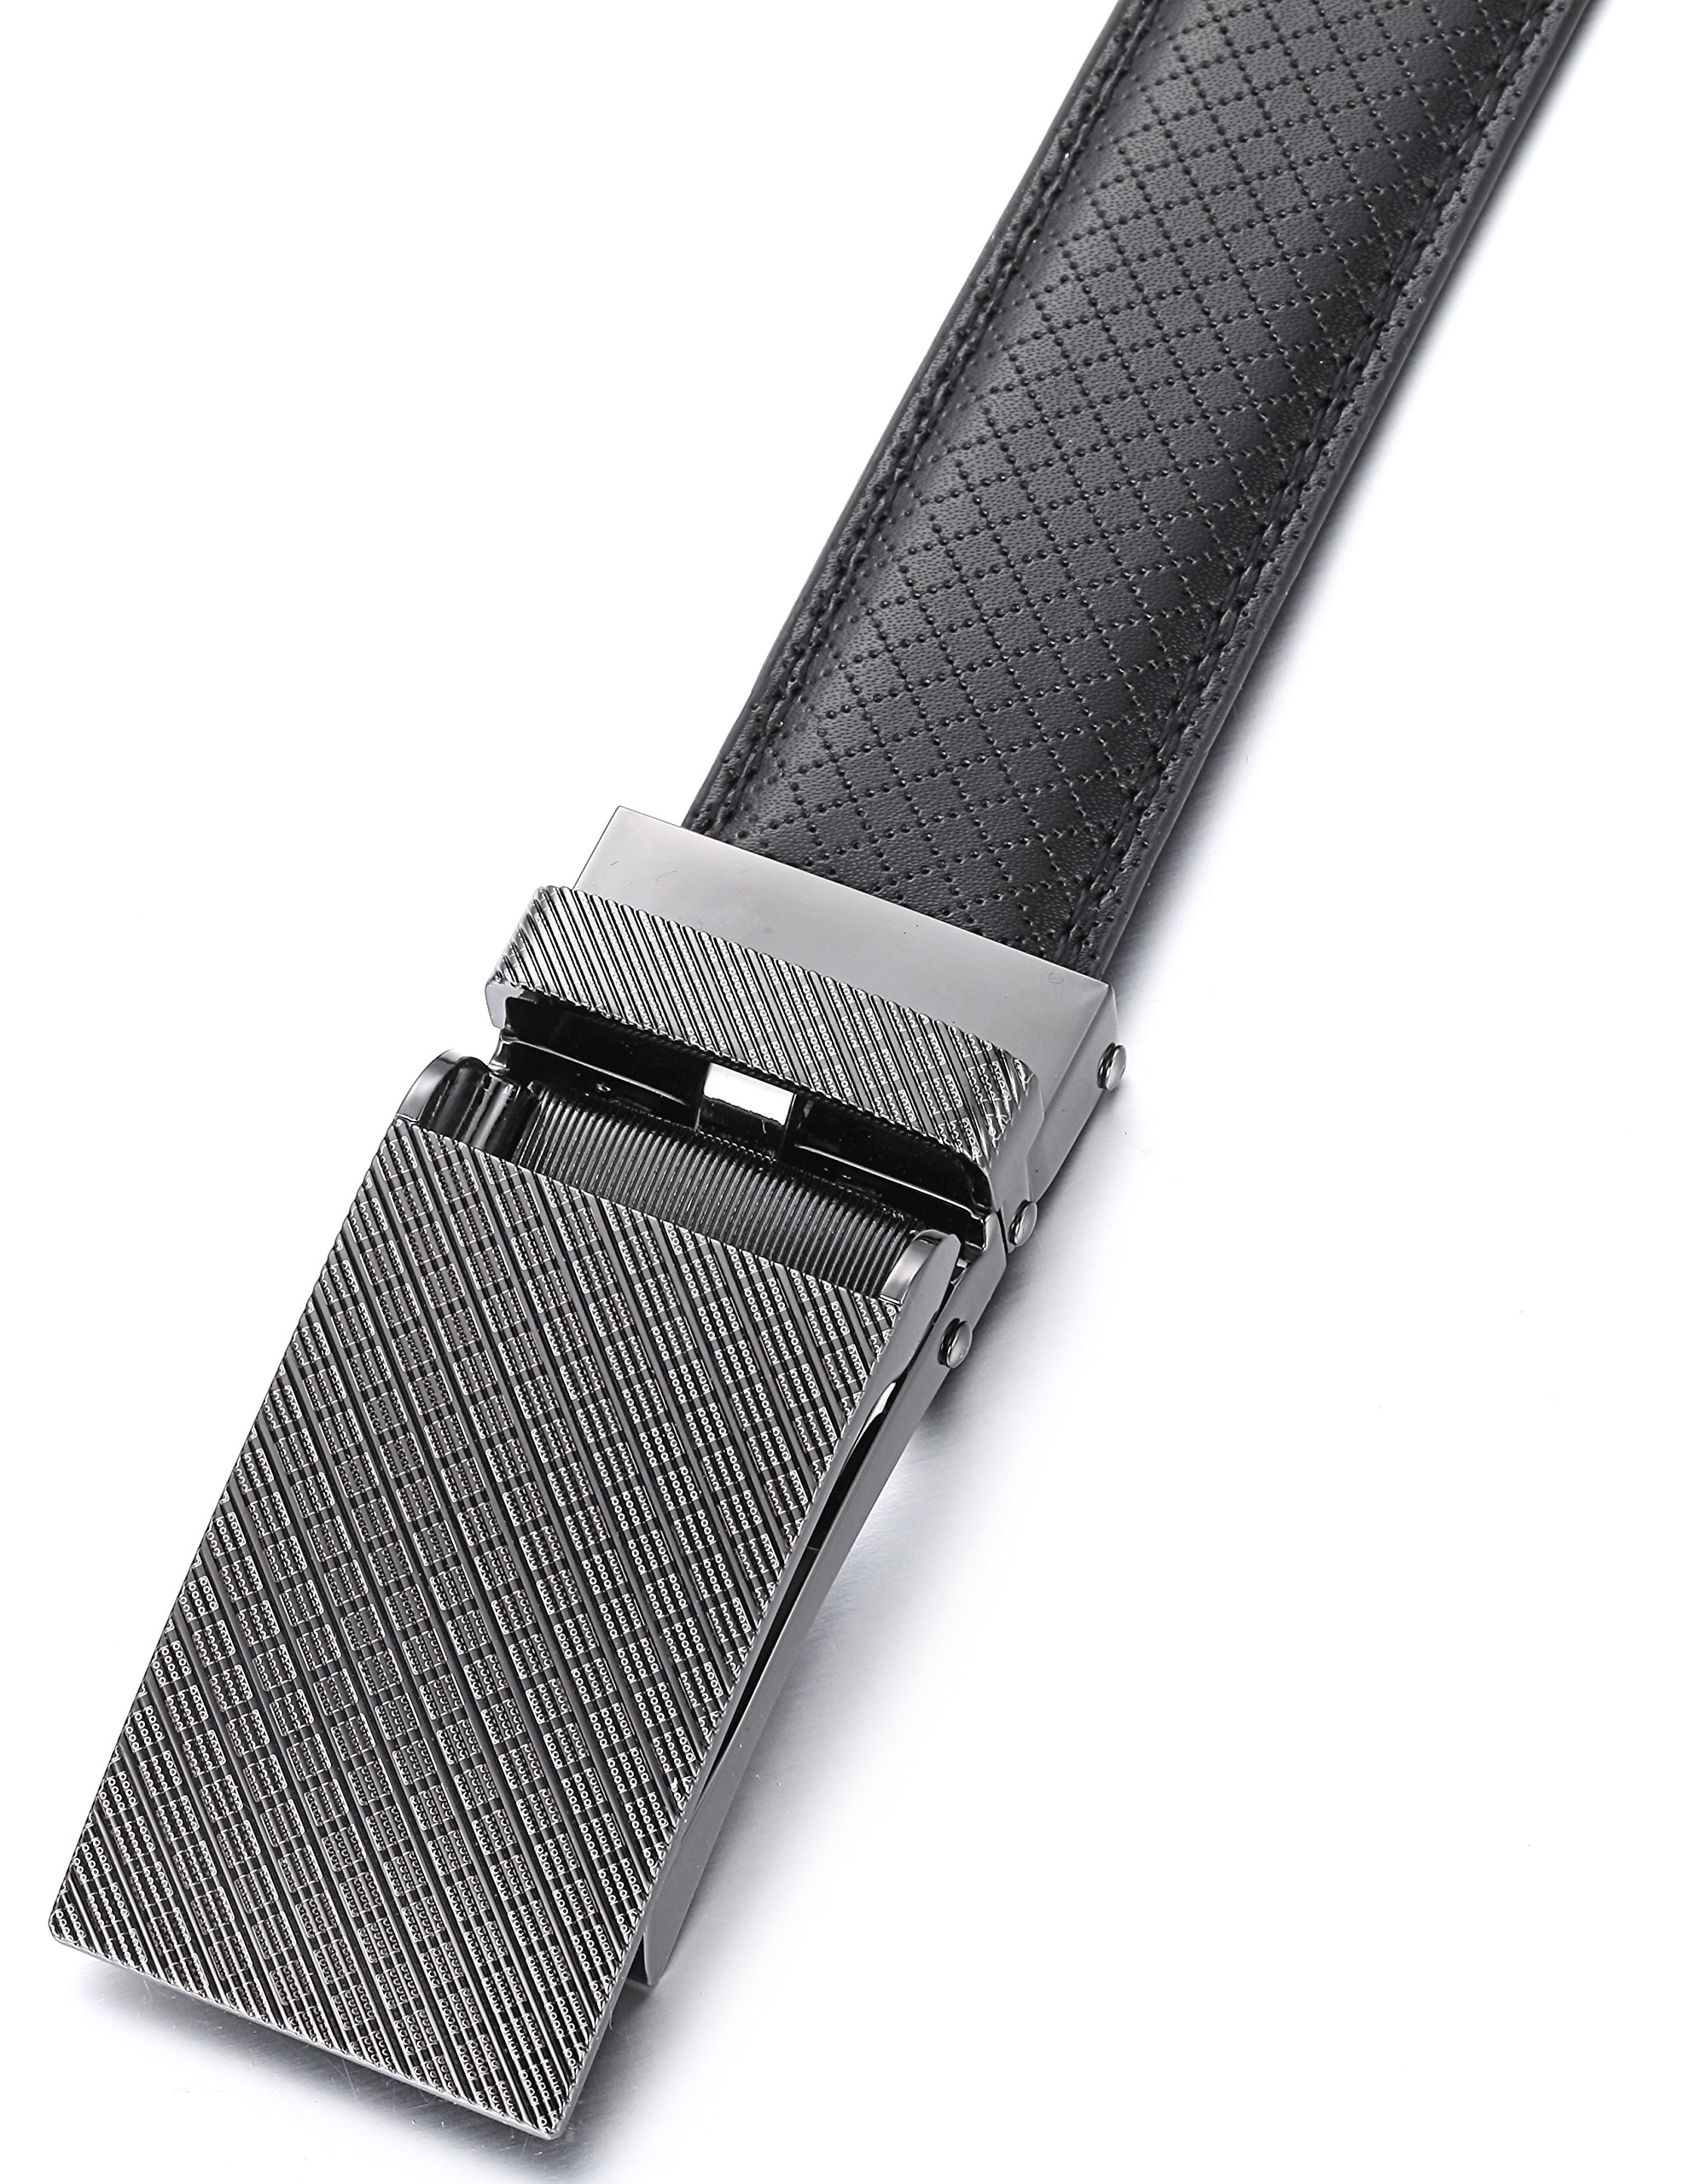 Gallery Seven Leather RatchetBelt For Men - Adjustable Click Belt - Black - Style 11 - Adjustable from 28'' to 44'' Waist by Gallery Seven (Image #3)